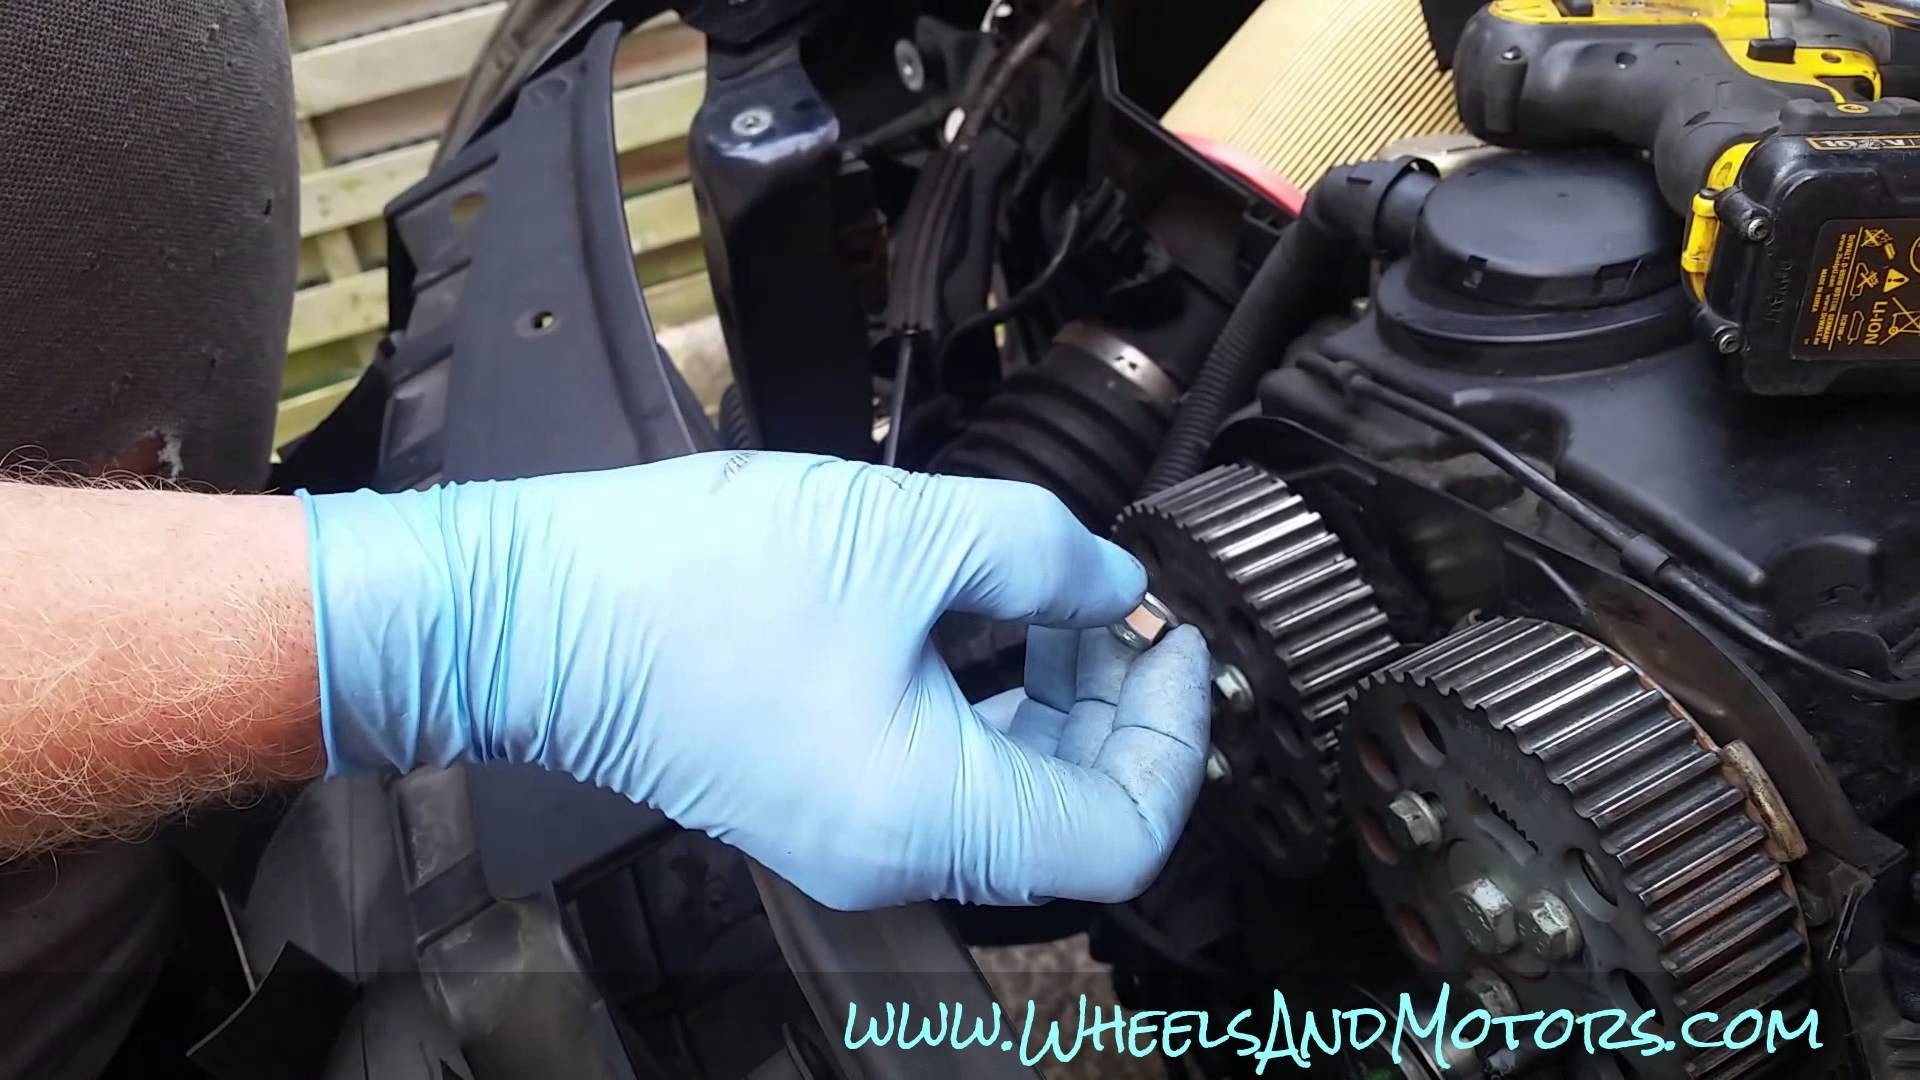 2007 Audi A4 Engine Diagram How to Replace Timing Belt Cambelt and Water Pump On 2 0 Tdi Of 2007 Audi A4 Engine Diagram Power Seat Wiring Diagram Best Audi A4 Power Seat Wiring Diagram